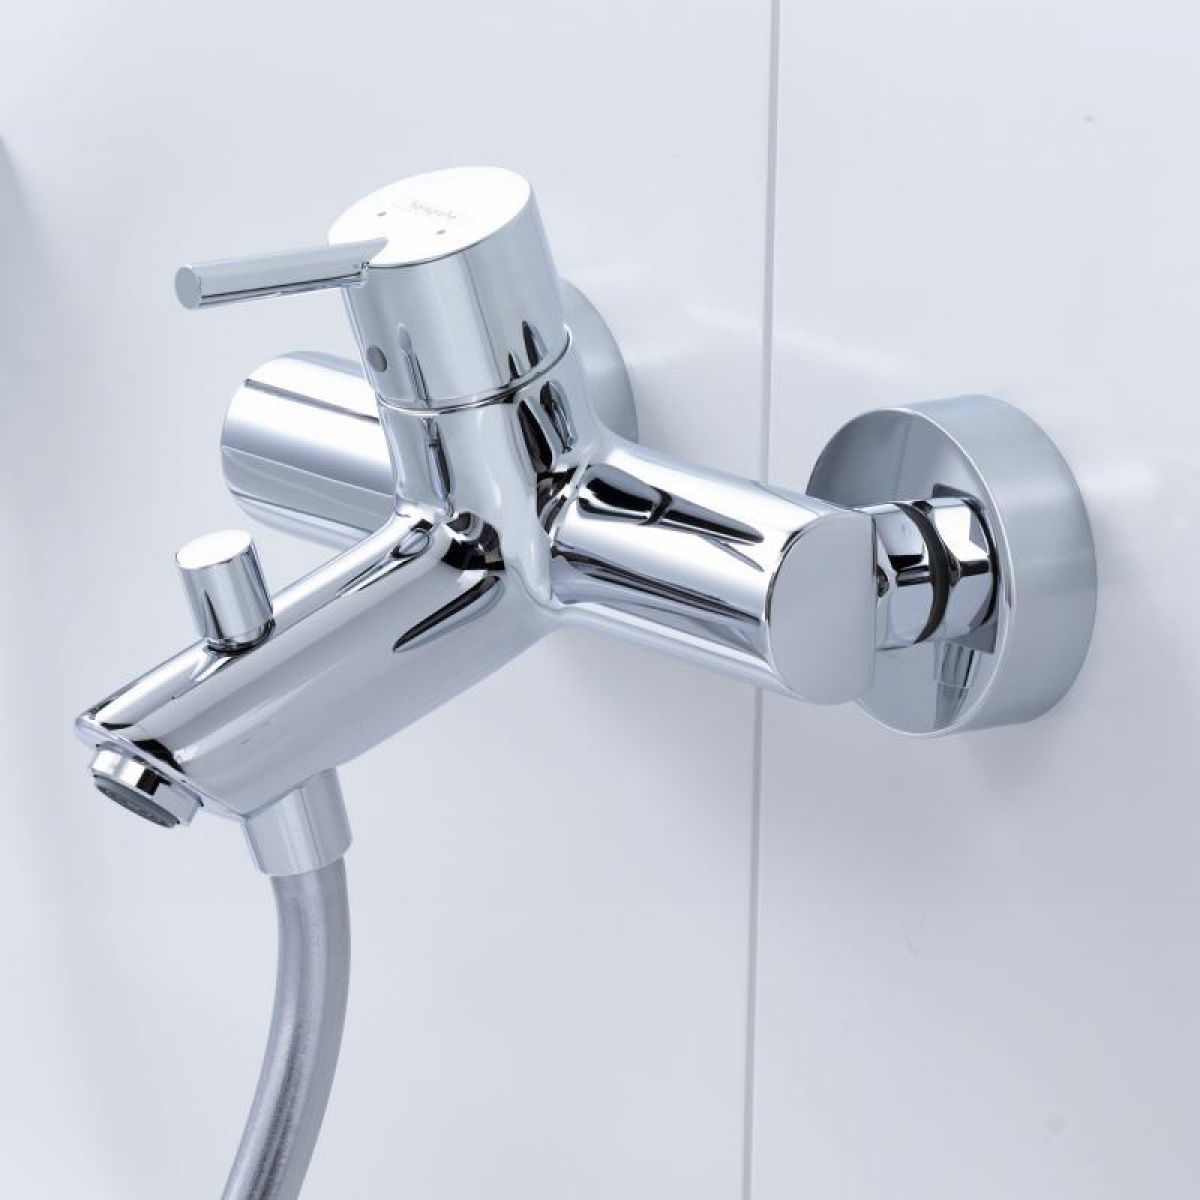 hansgrohe talis s2 exposed bath shower mixer uk bathrooms. Black Bedroom Furniture Sets. Home Design Ideas